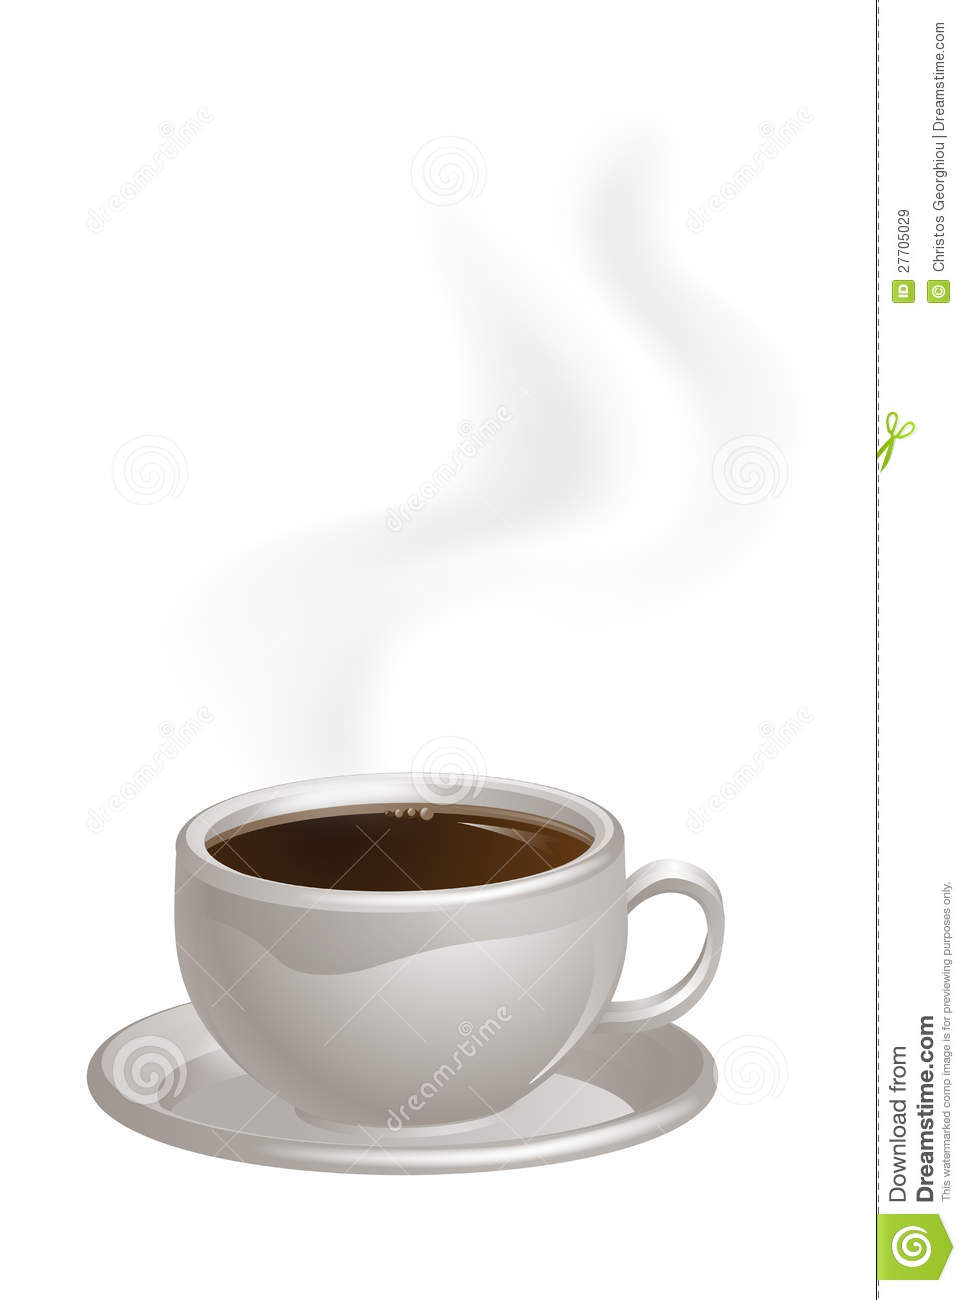 Steaming Coffee Cup On Saucer Stock Vector - Illustration ...